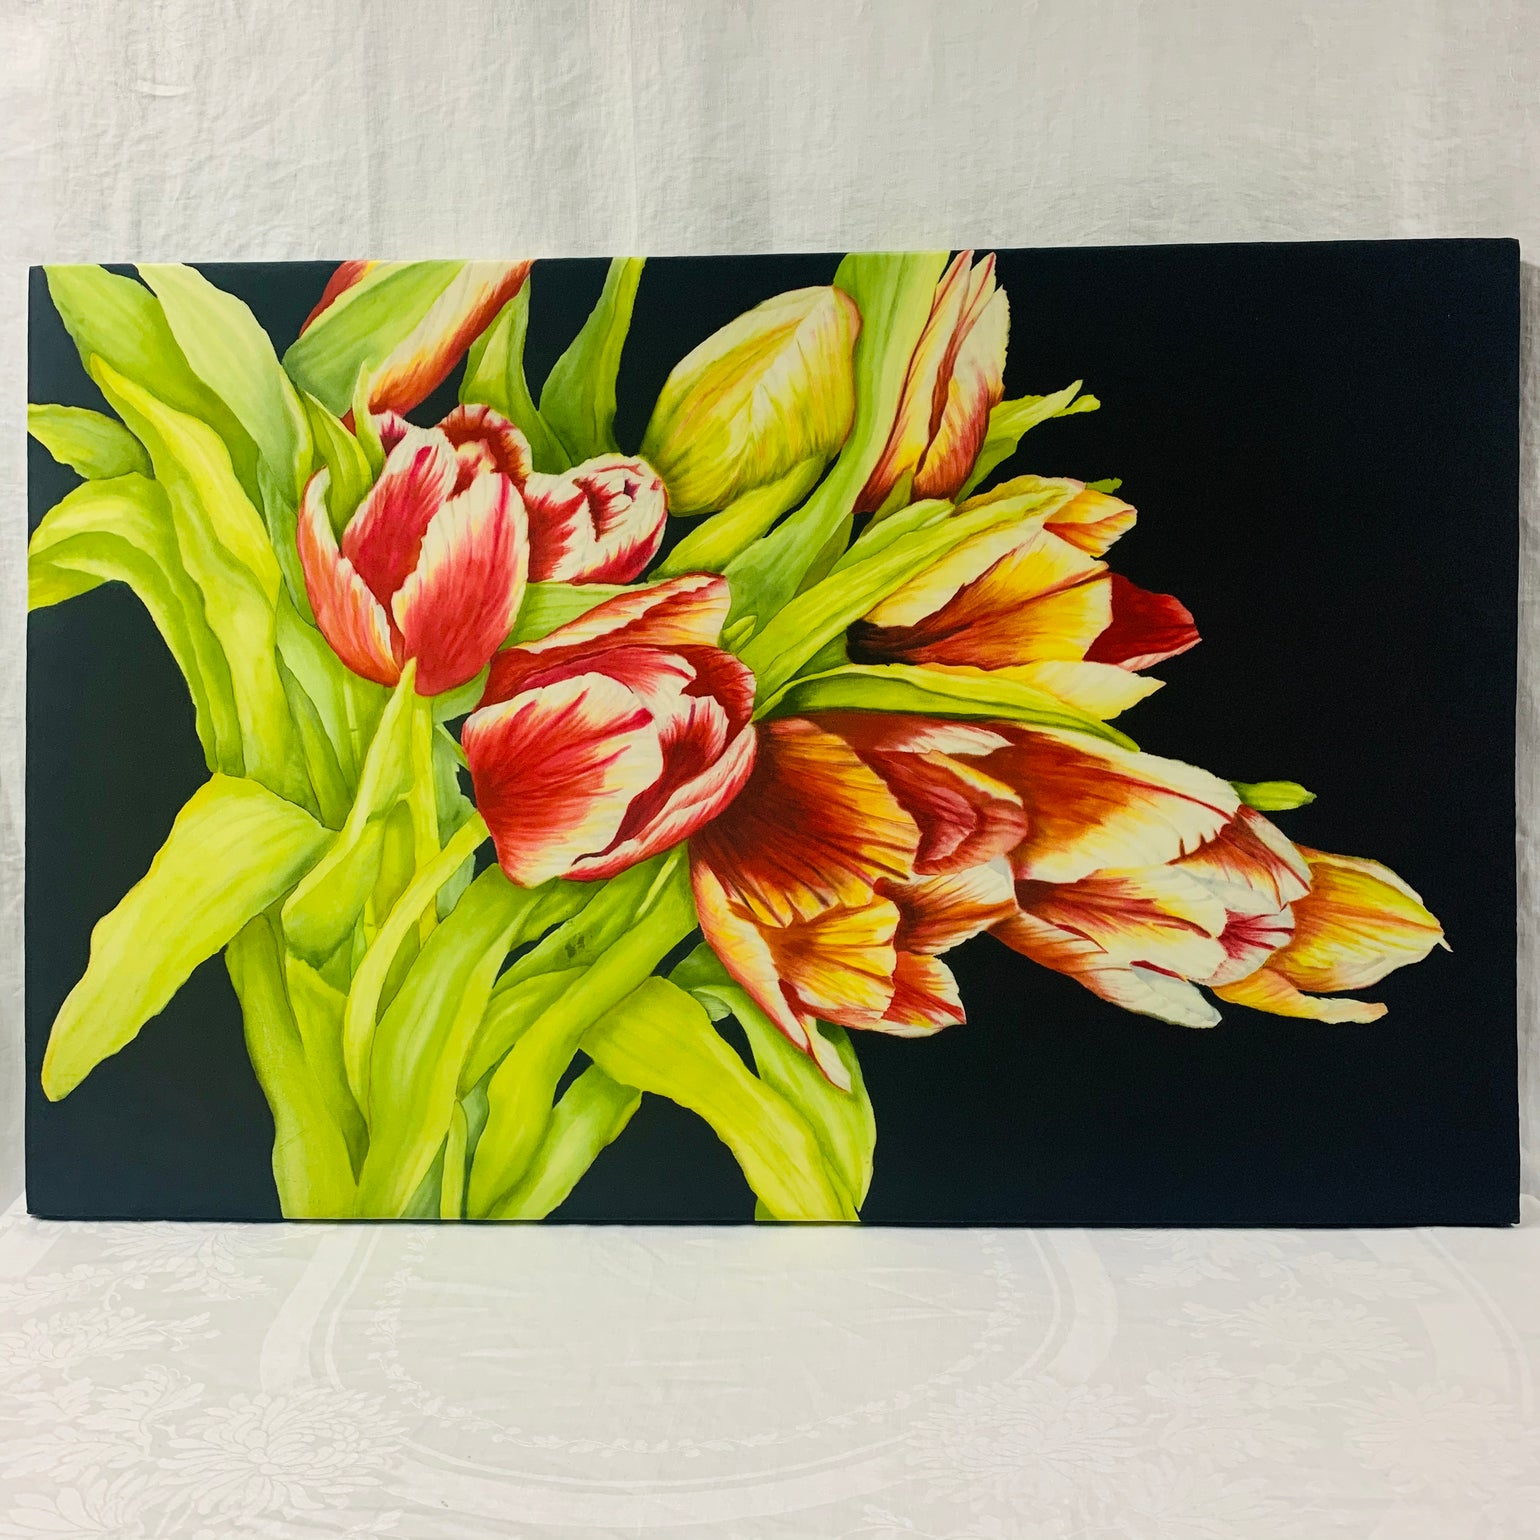 Image of Canada's Tulips